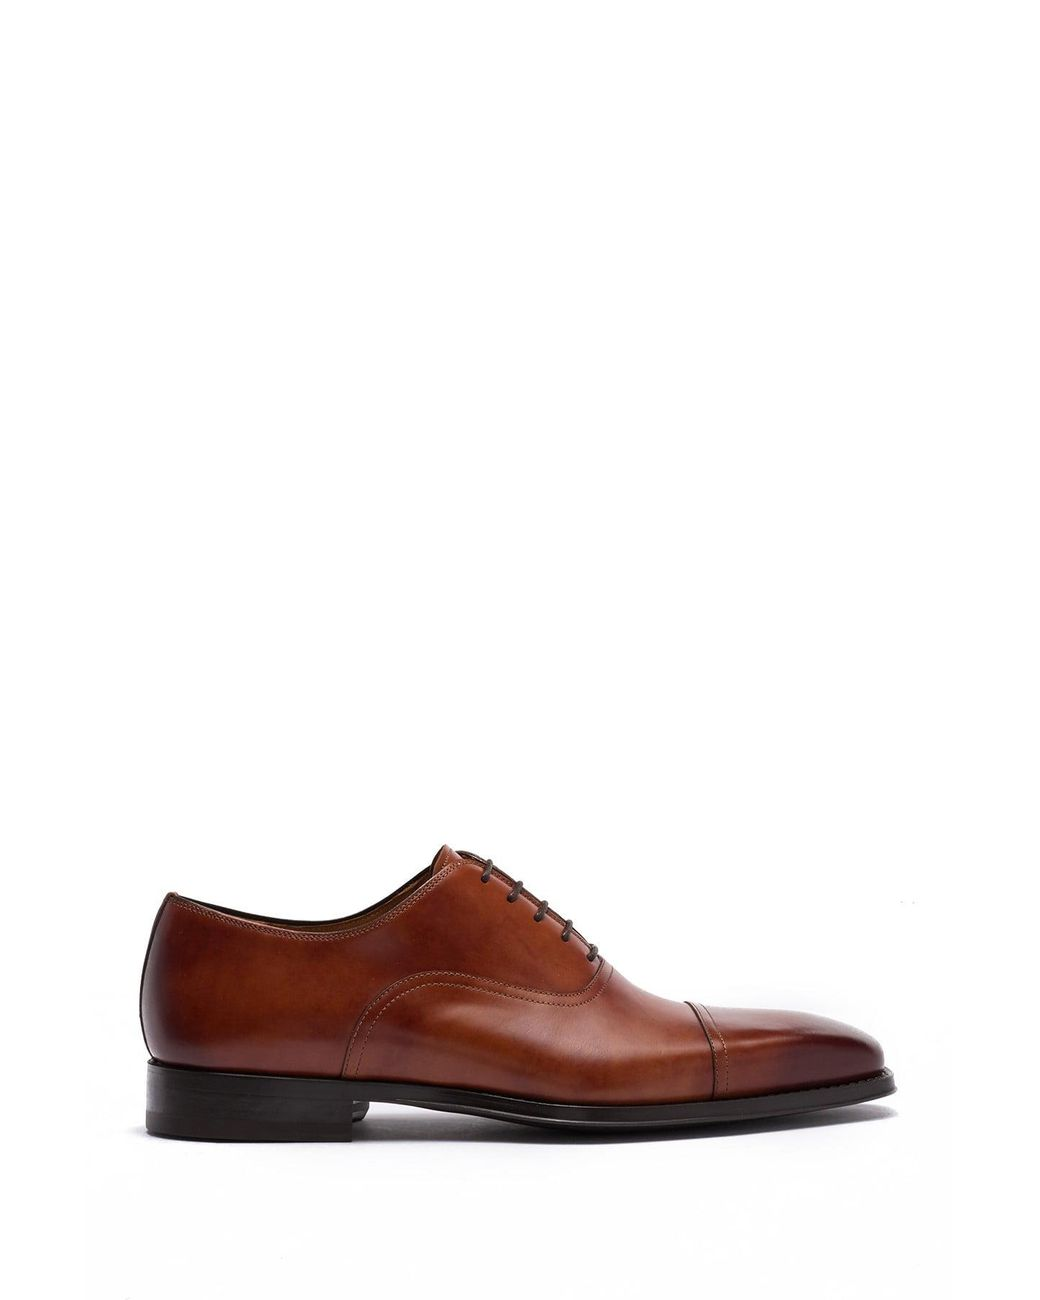 Magnanni Lucas Leather Oxford in Cognac